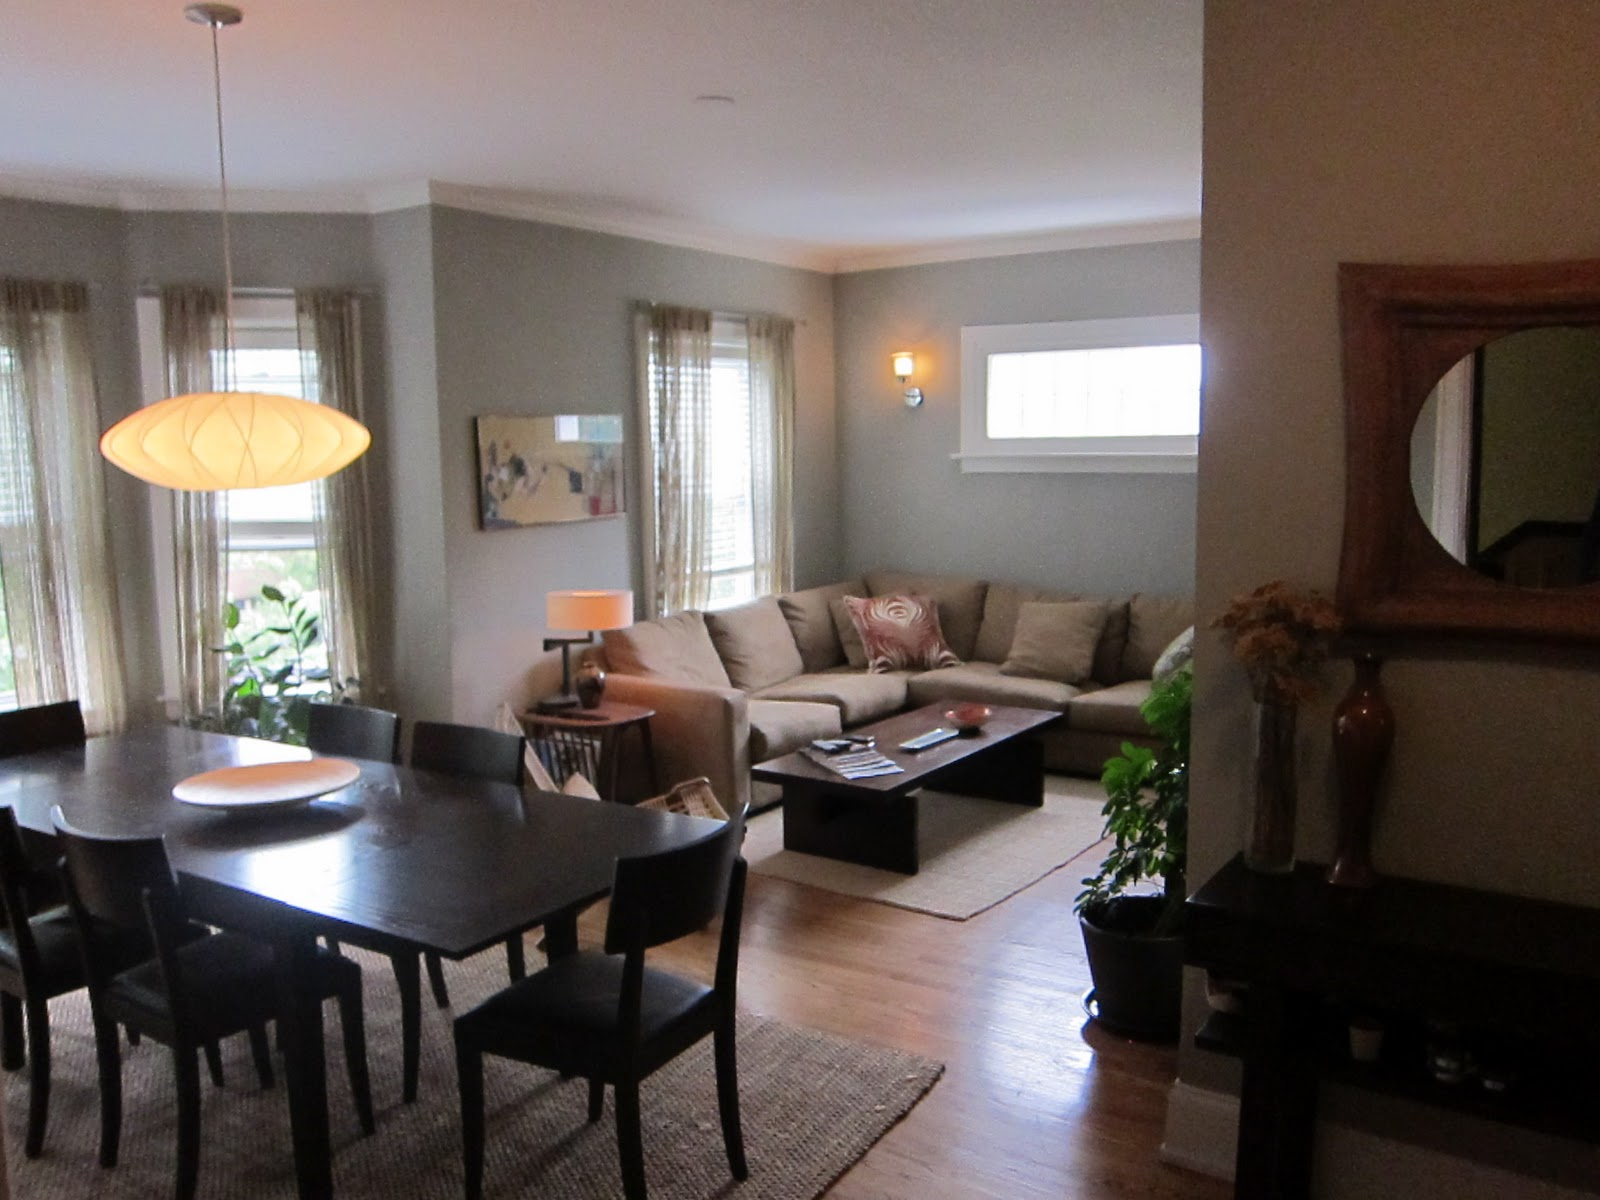 The Chicago Real Estate Local New For Sale 5027 N